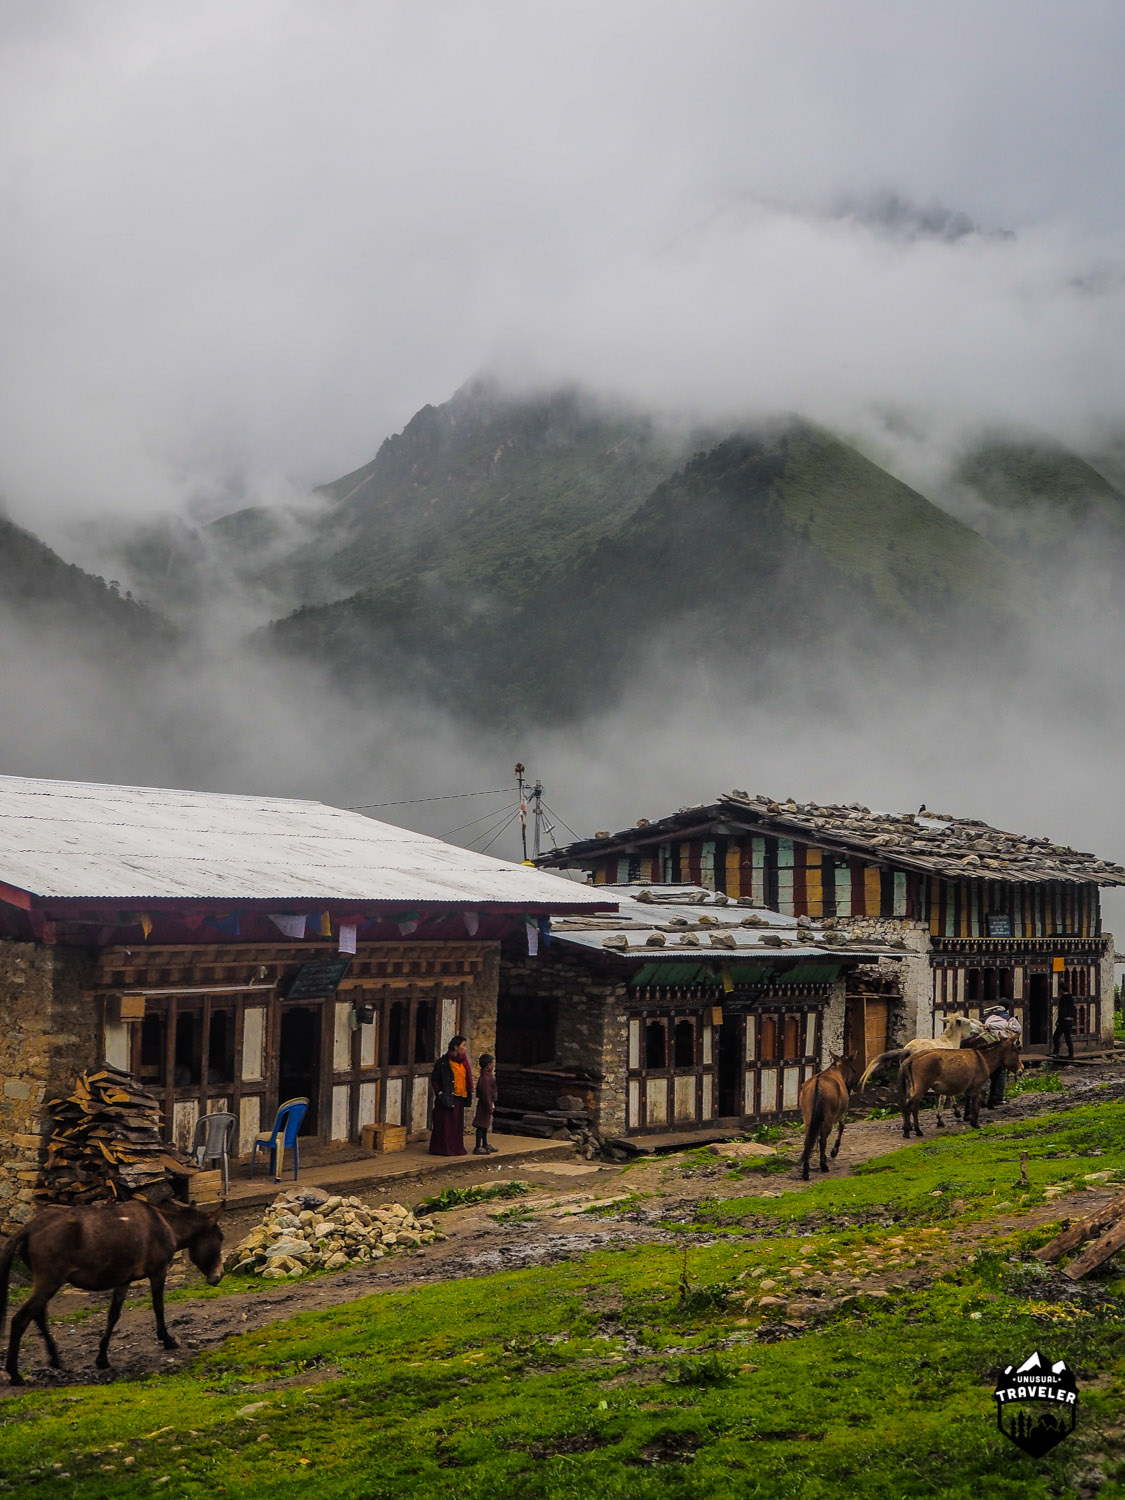 In far north Bhutan, here in Laya is the traffic by horses, no cars up here. The 3 buildings are all local bars